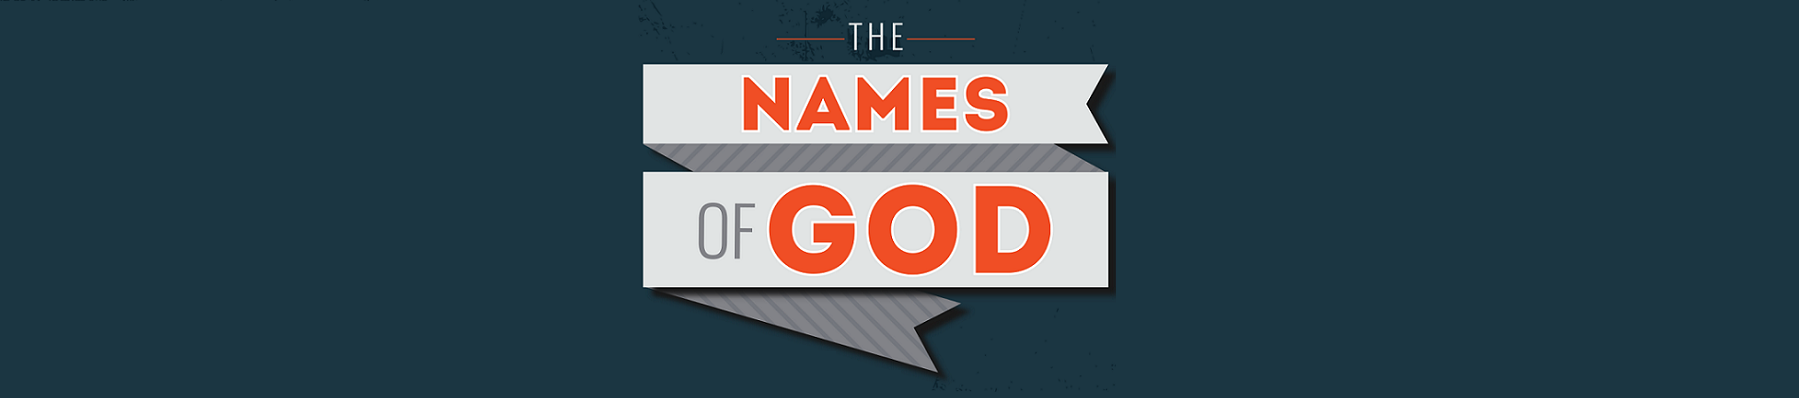 The-Names-Of-God-title-16×9 web